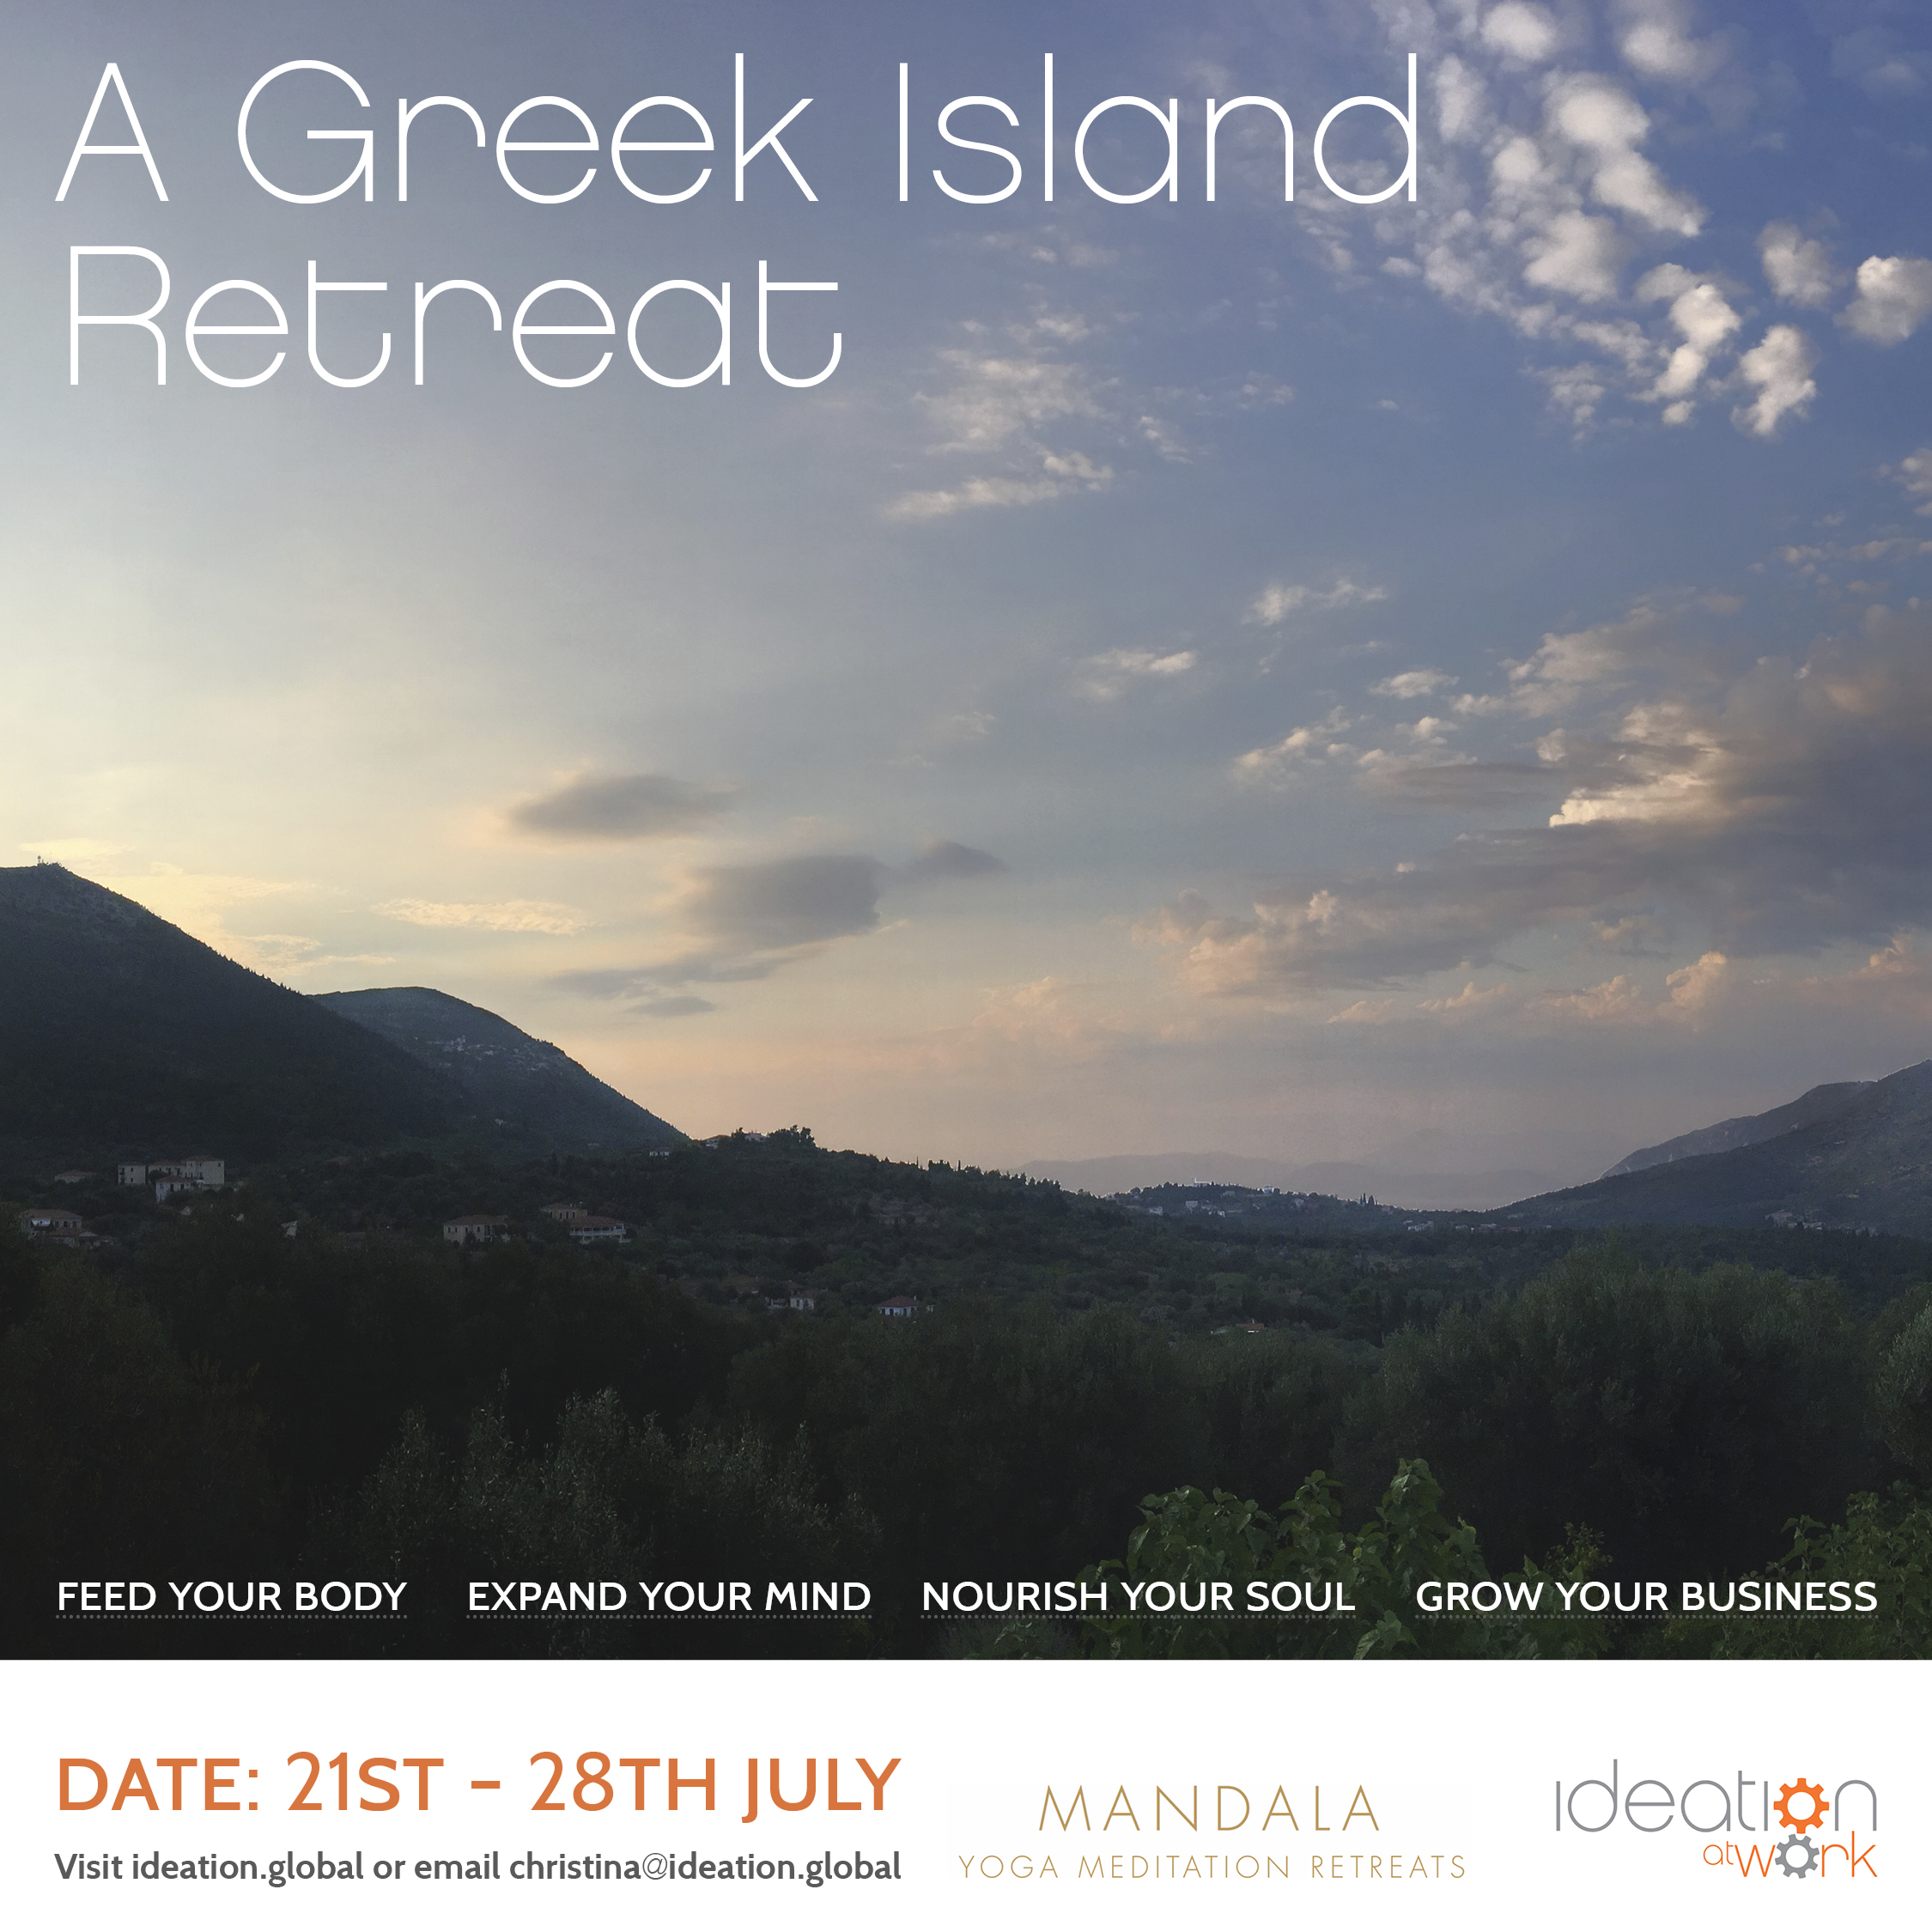 GreekIslandRetreat_InstagramV4_3.jpg